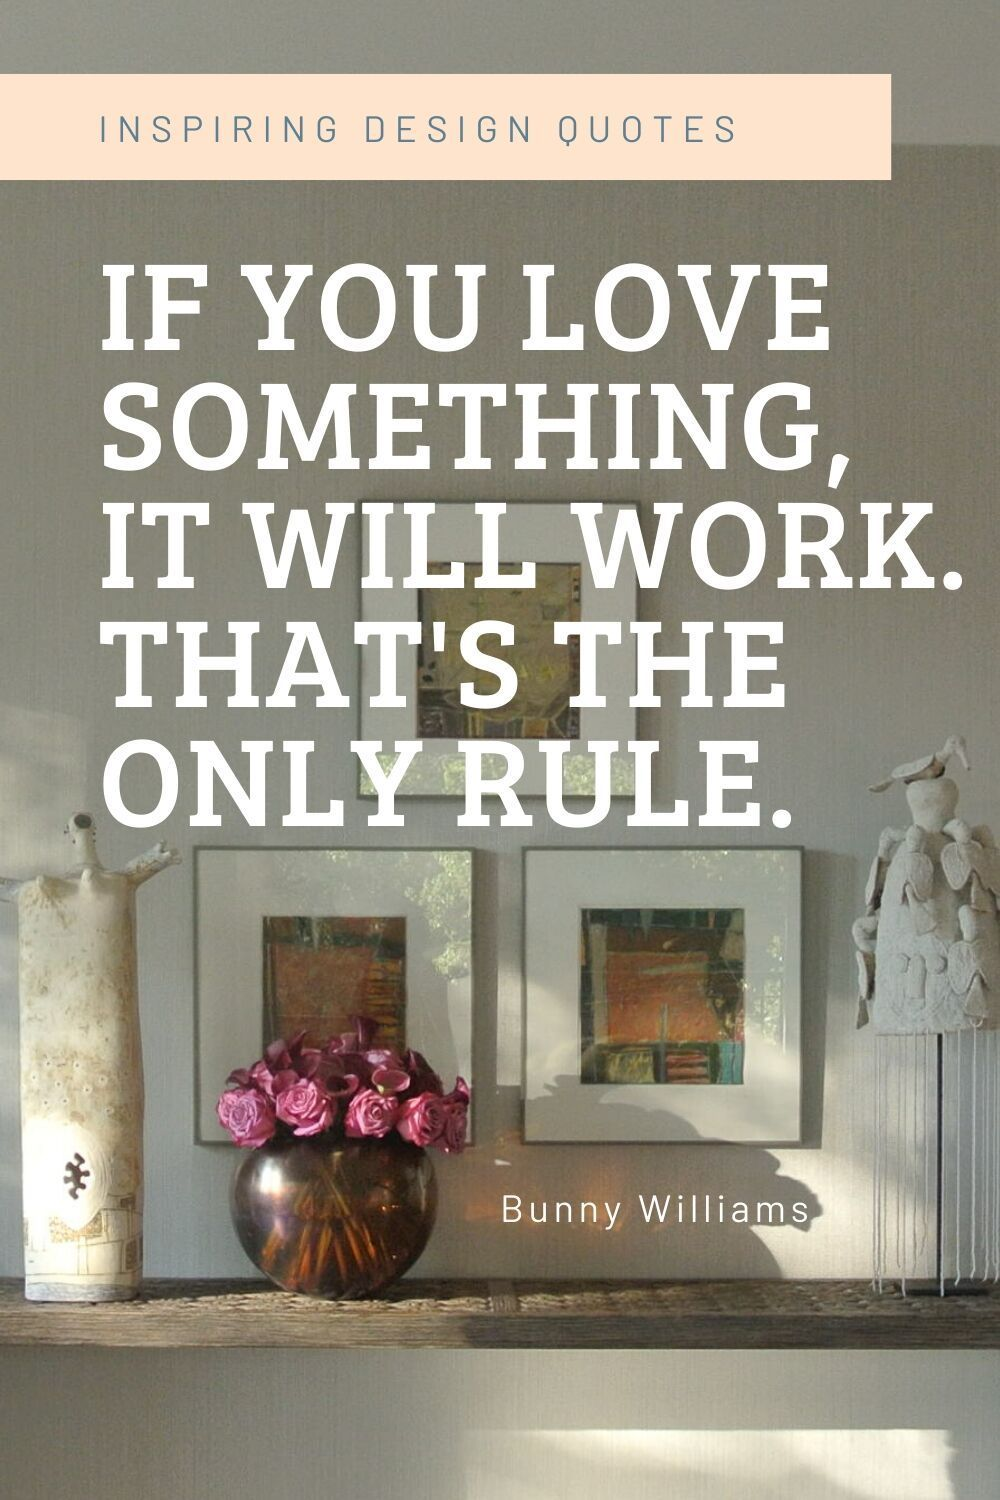 Inspirational interior design quote to motivate and inspire you from Interior Designer Bunny Williams posted by Los Angeles Interior Designer. There is only one rule, if you love something it will work #designquotes #quotes #inspiration #designtips  #designsayings #designmottos